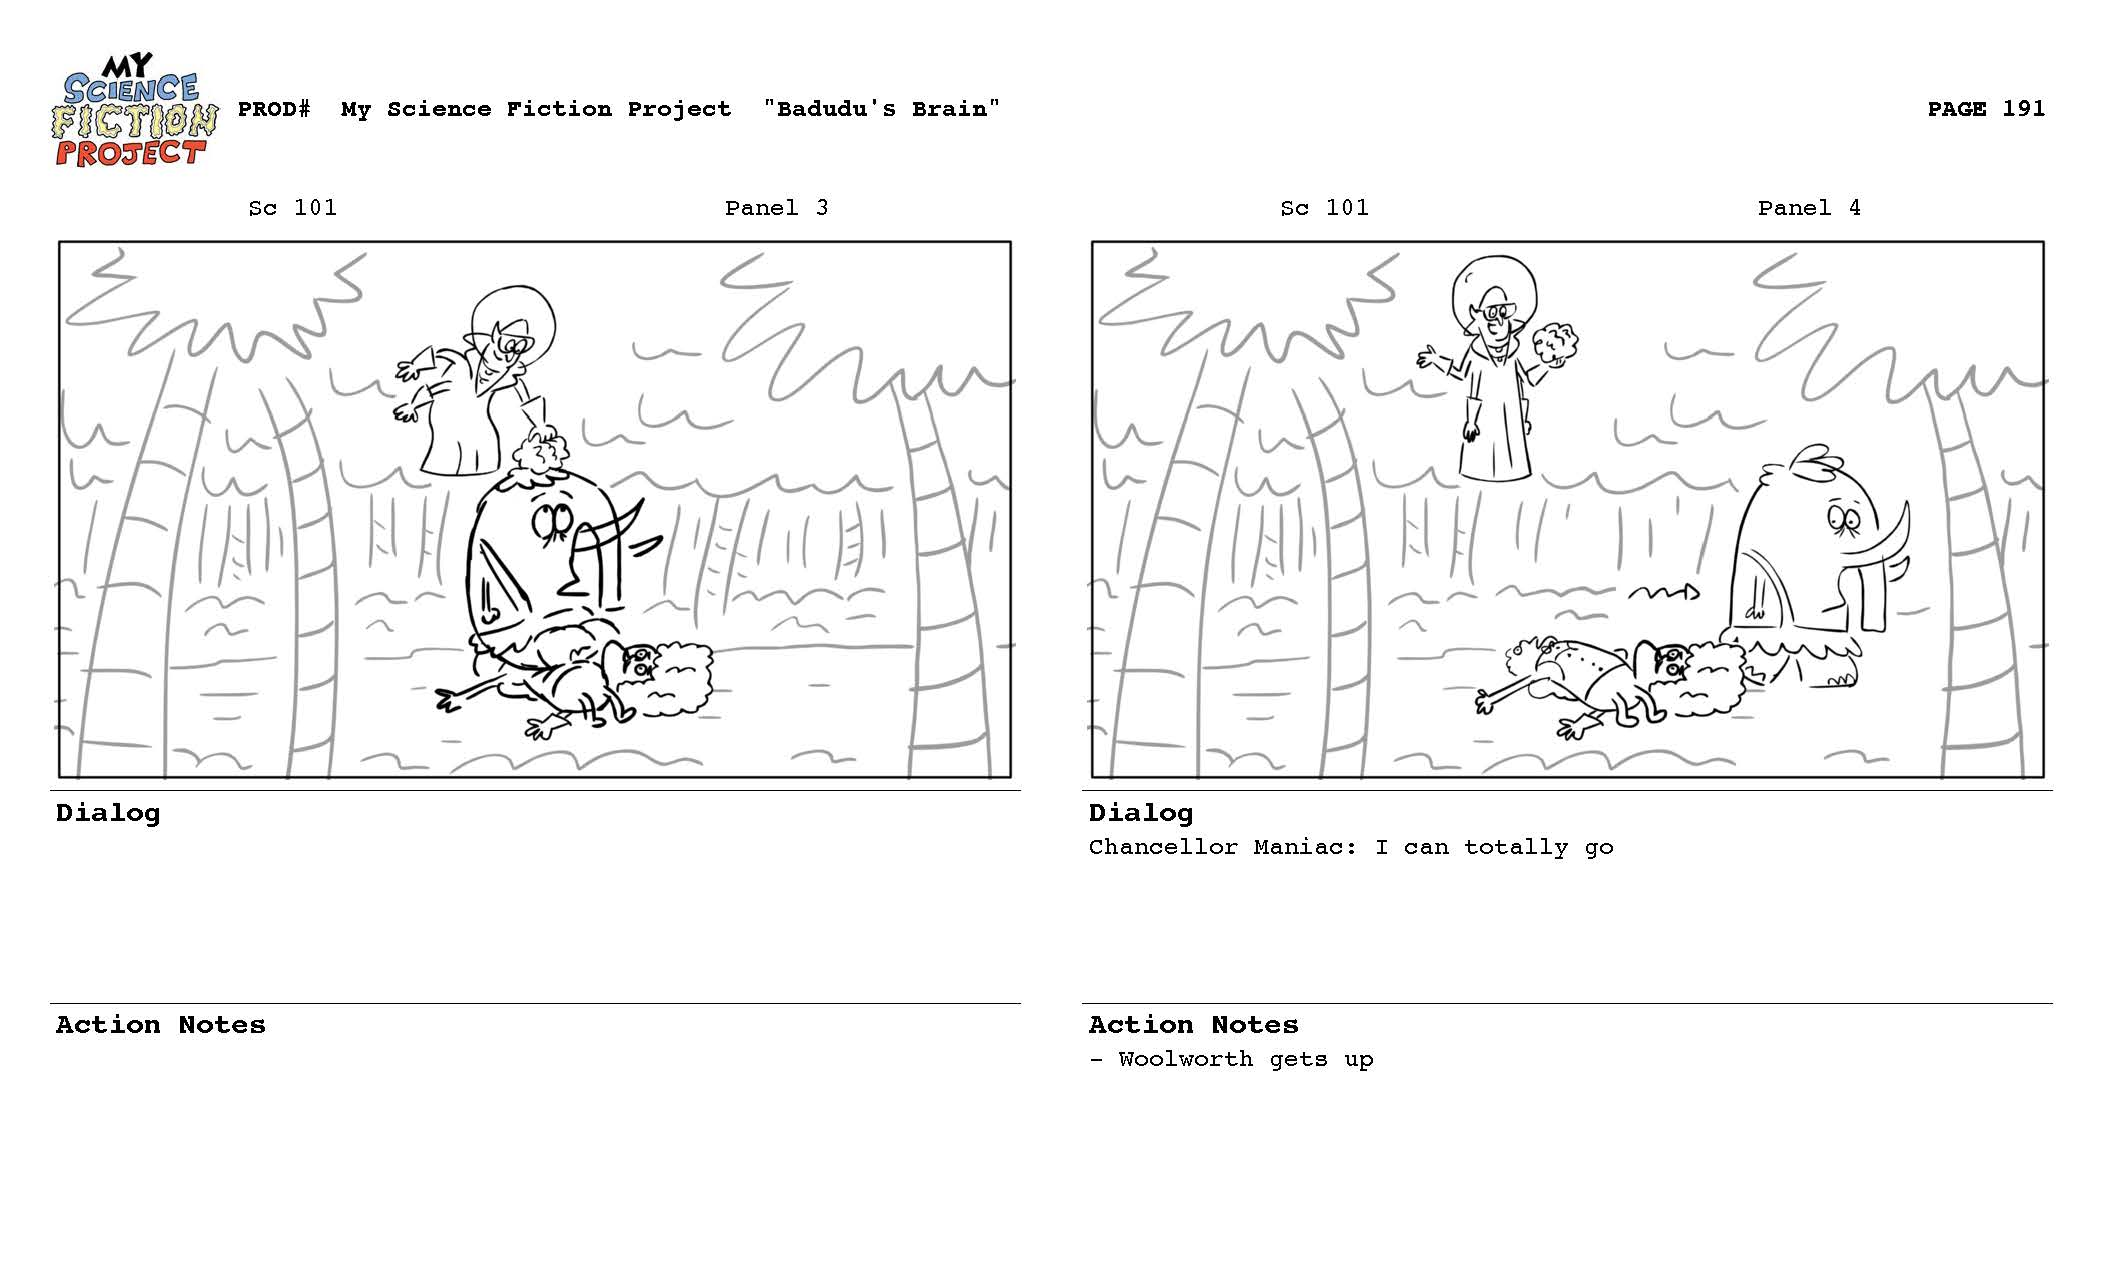 My_Science_Fiction_Project_SB_083112_reduced_Page_191.jpg